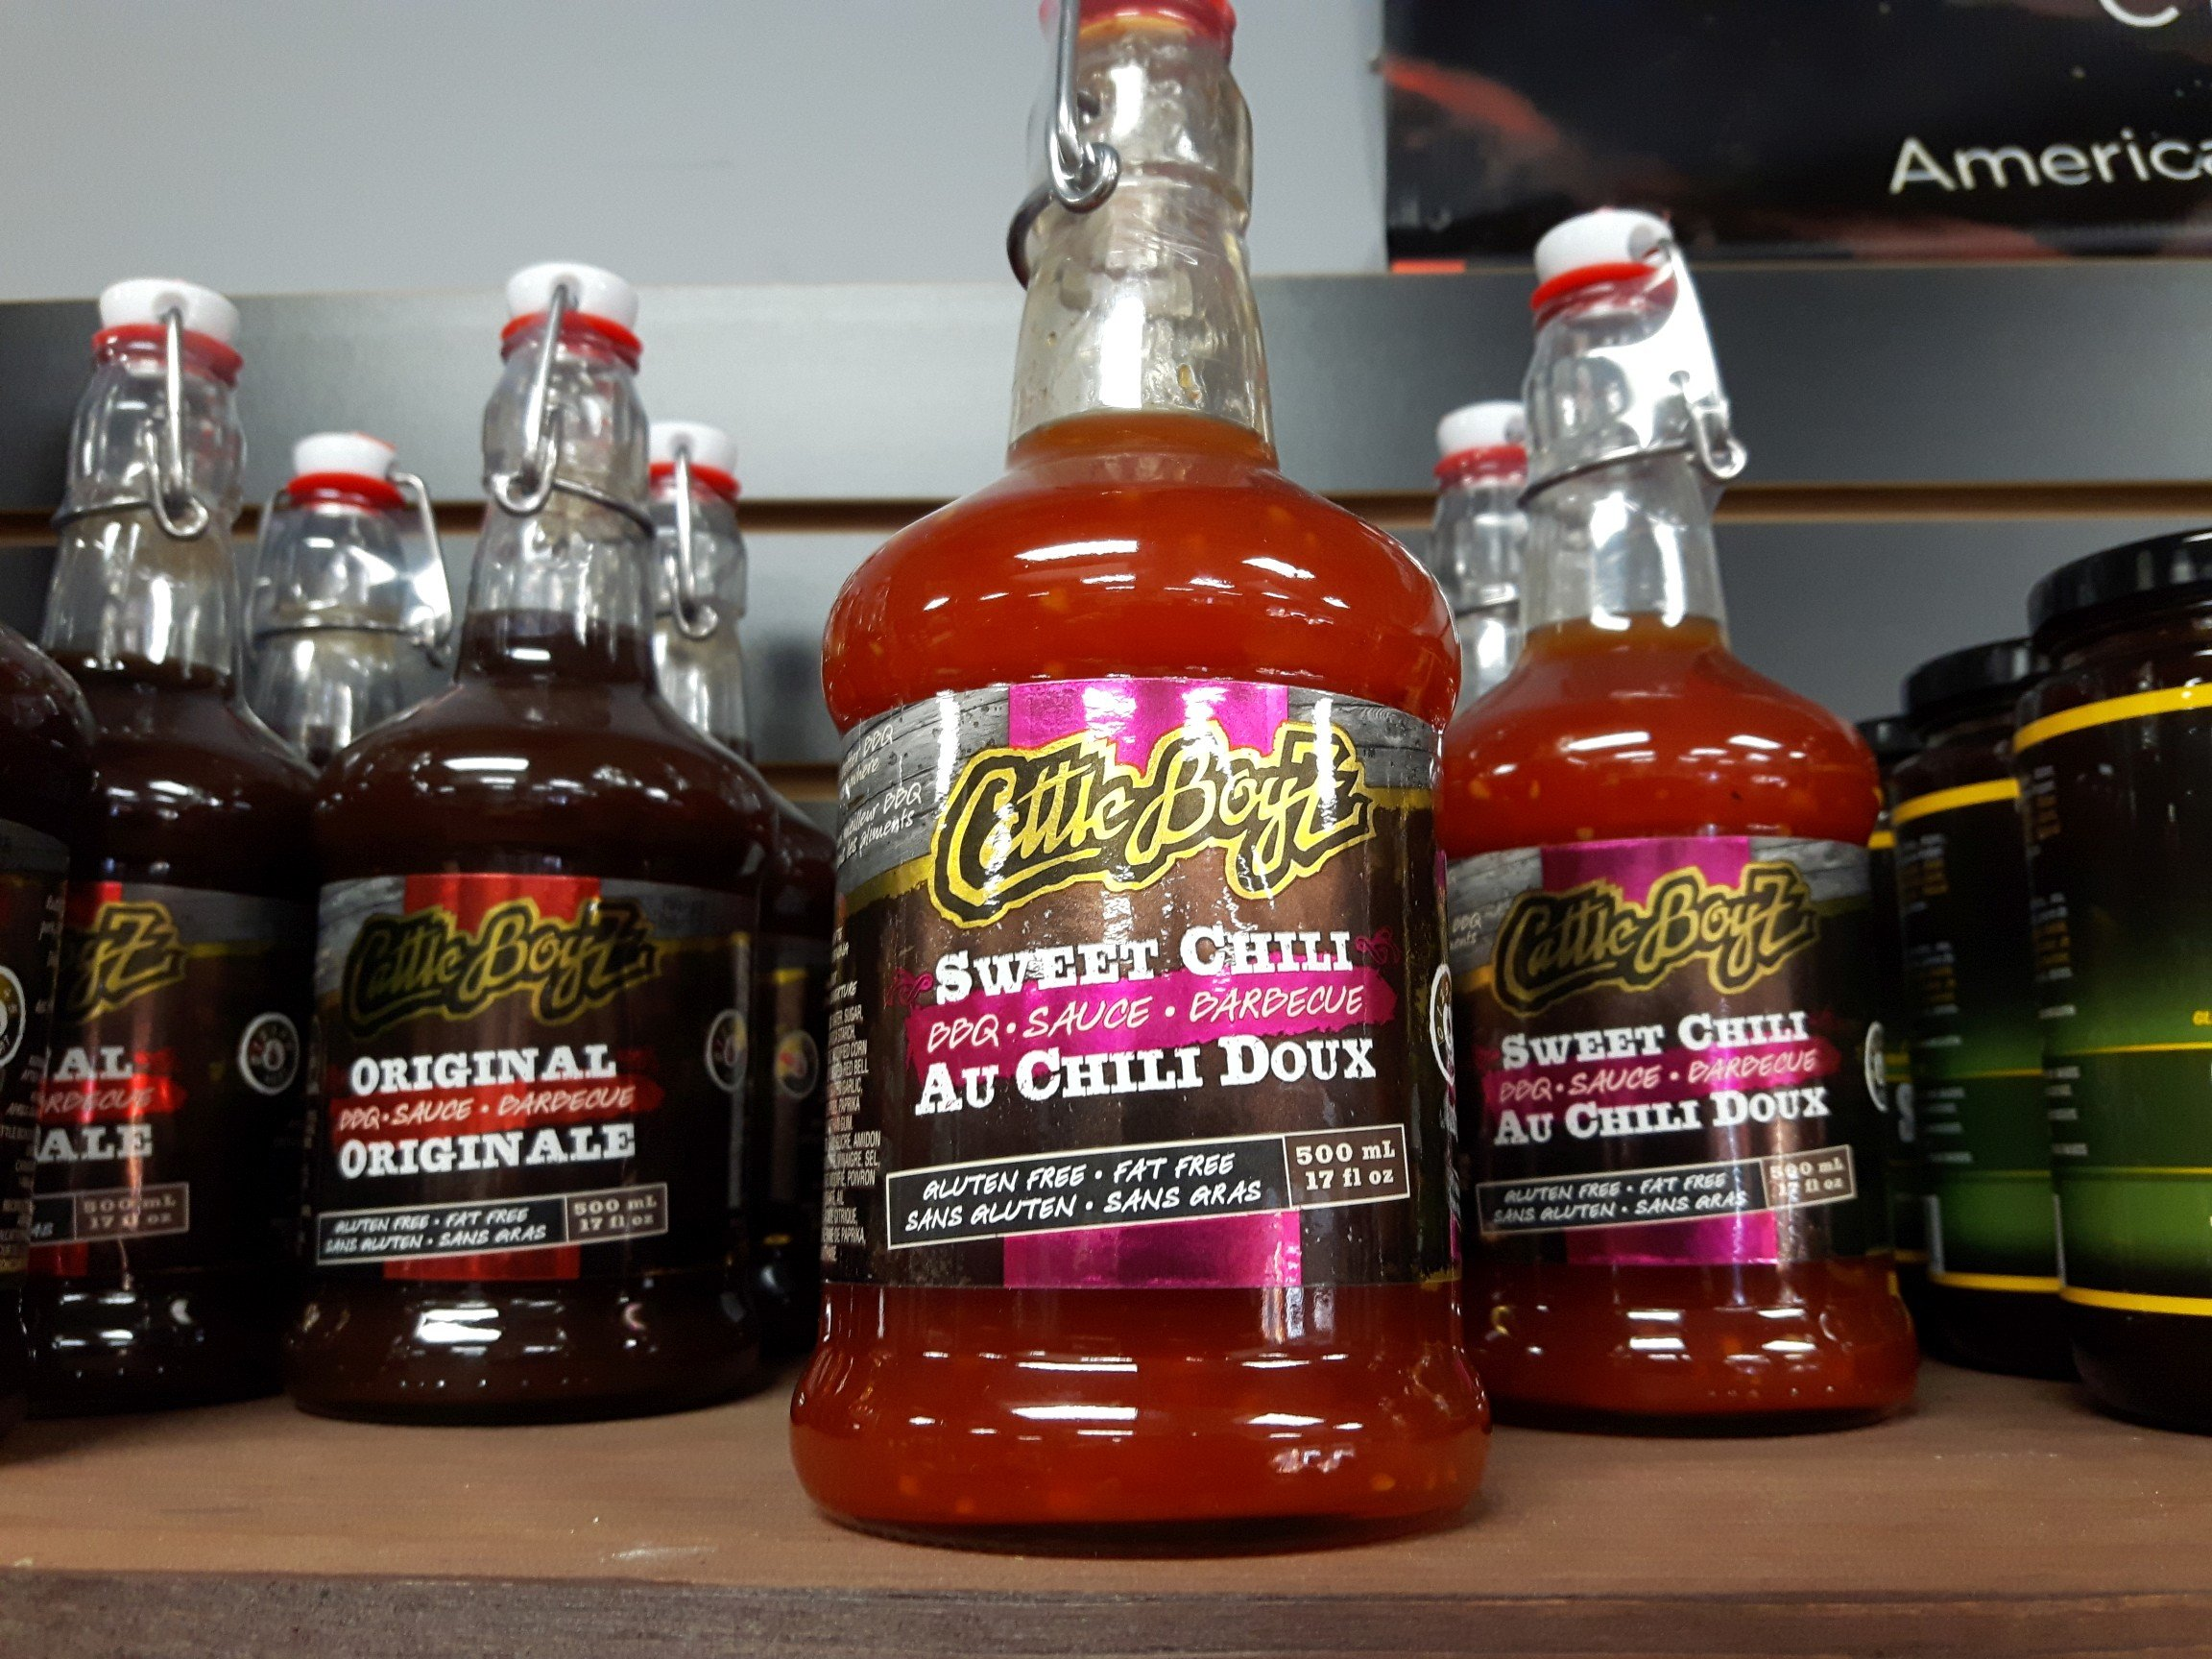 https://0901.nccdn.net/4_2/000/000/023/130/cattle-boyz-sweet-chili-sauce.jpg